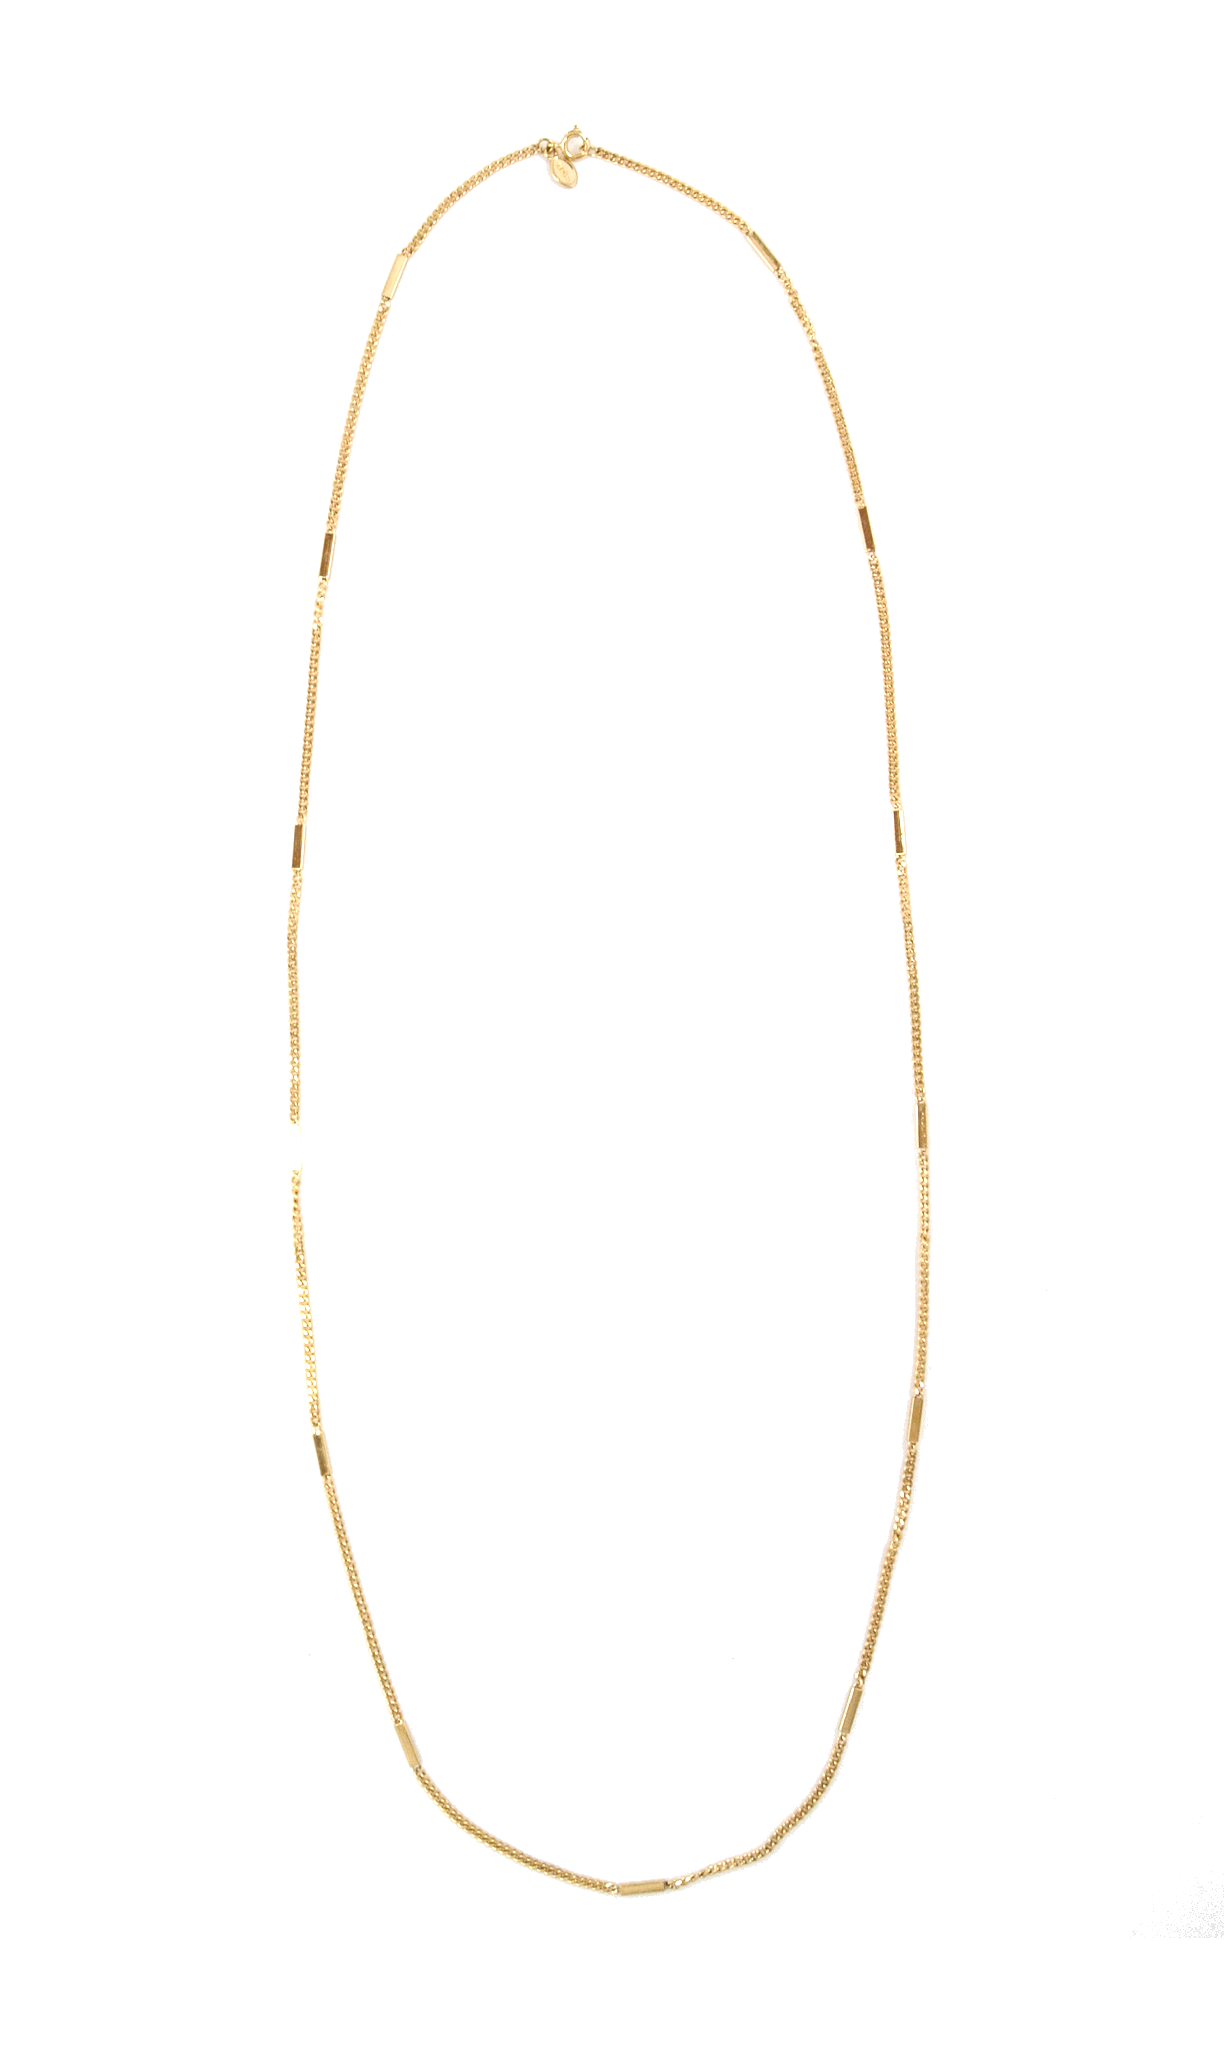 80's__Avon__Rectangle Chain